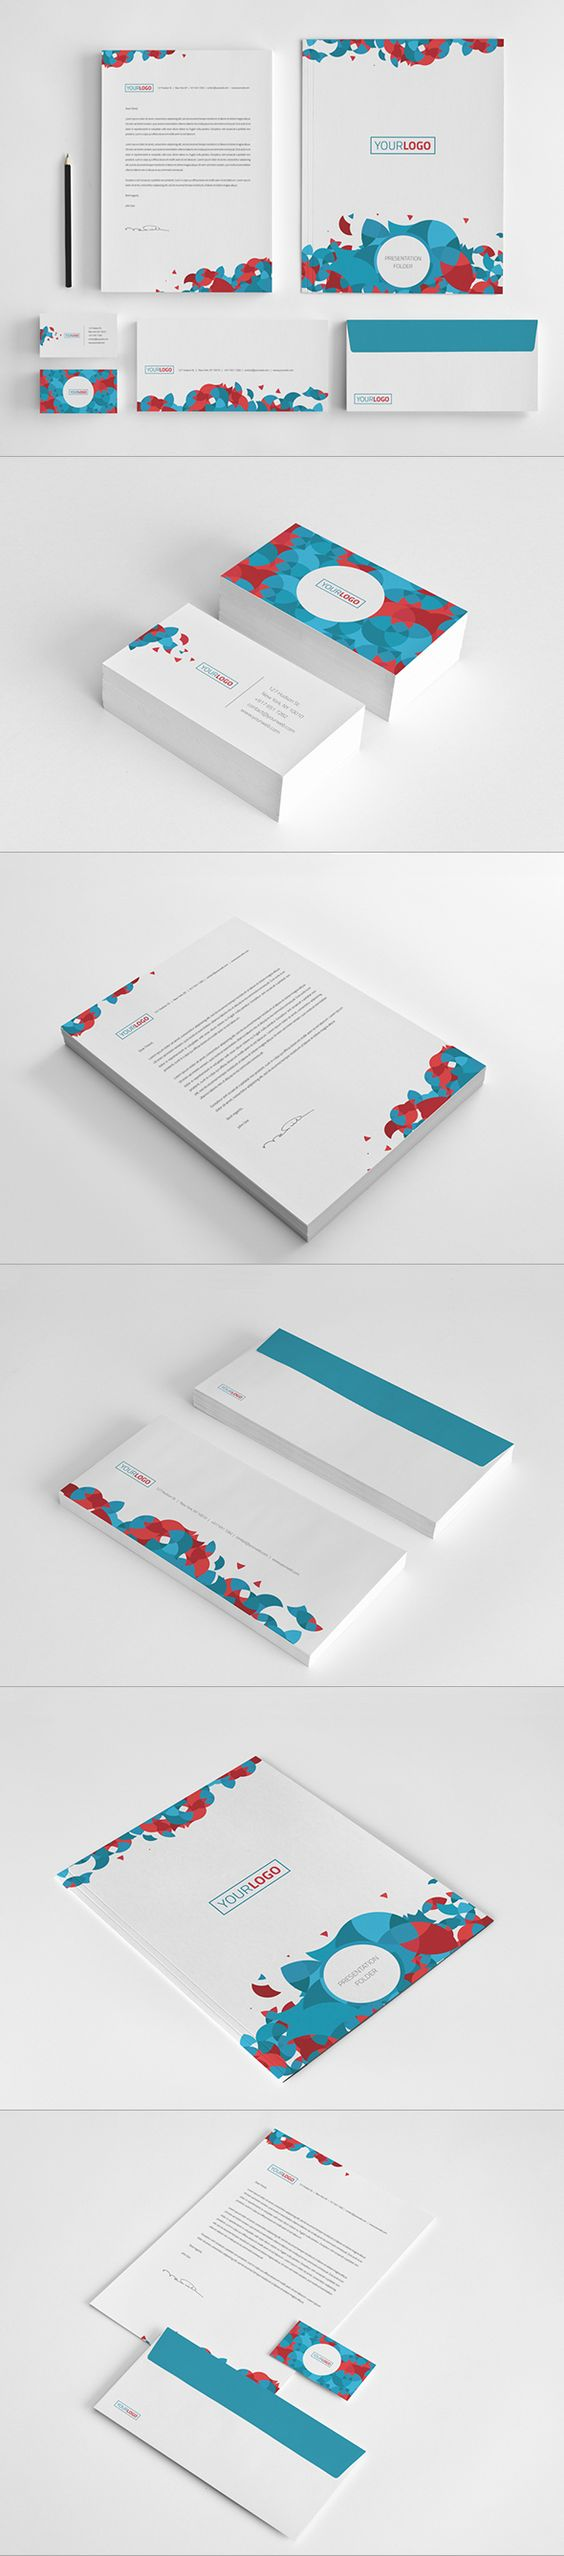 Circles Stationary Pack by Abra Design, via Behance #design #stationary